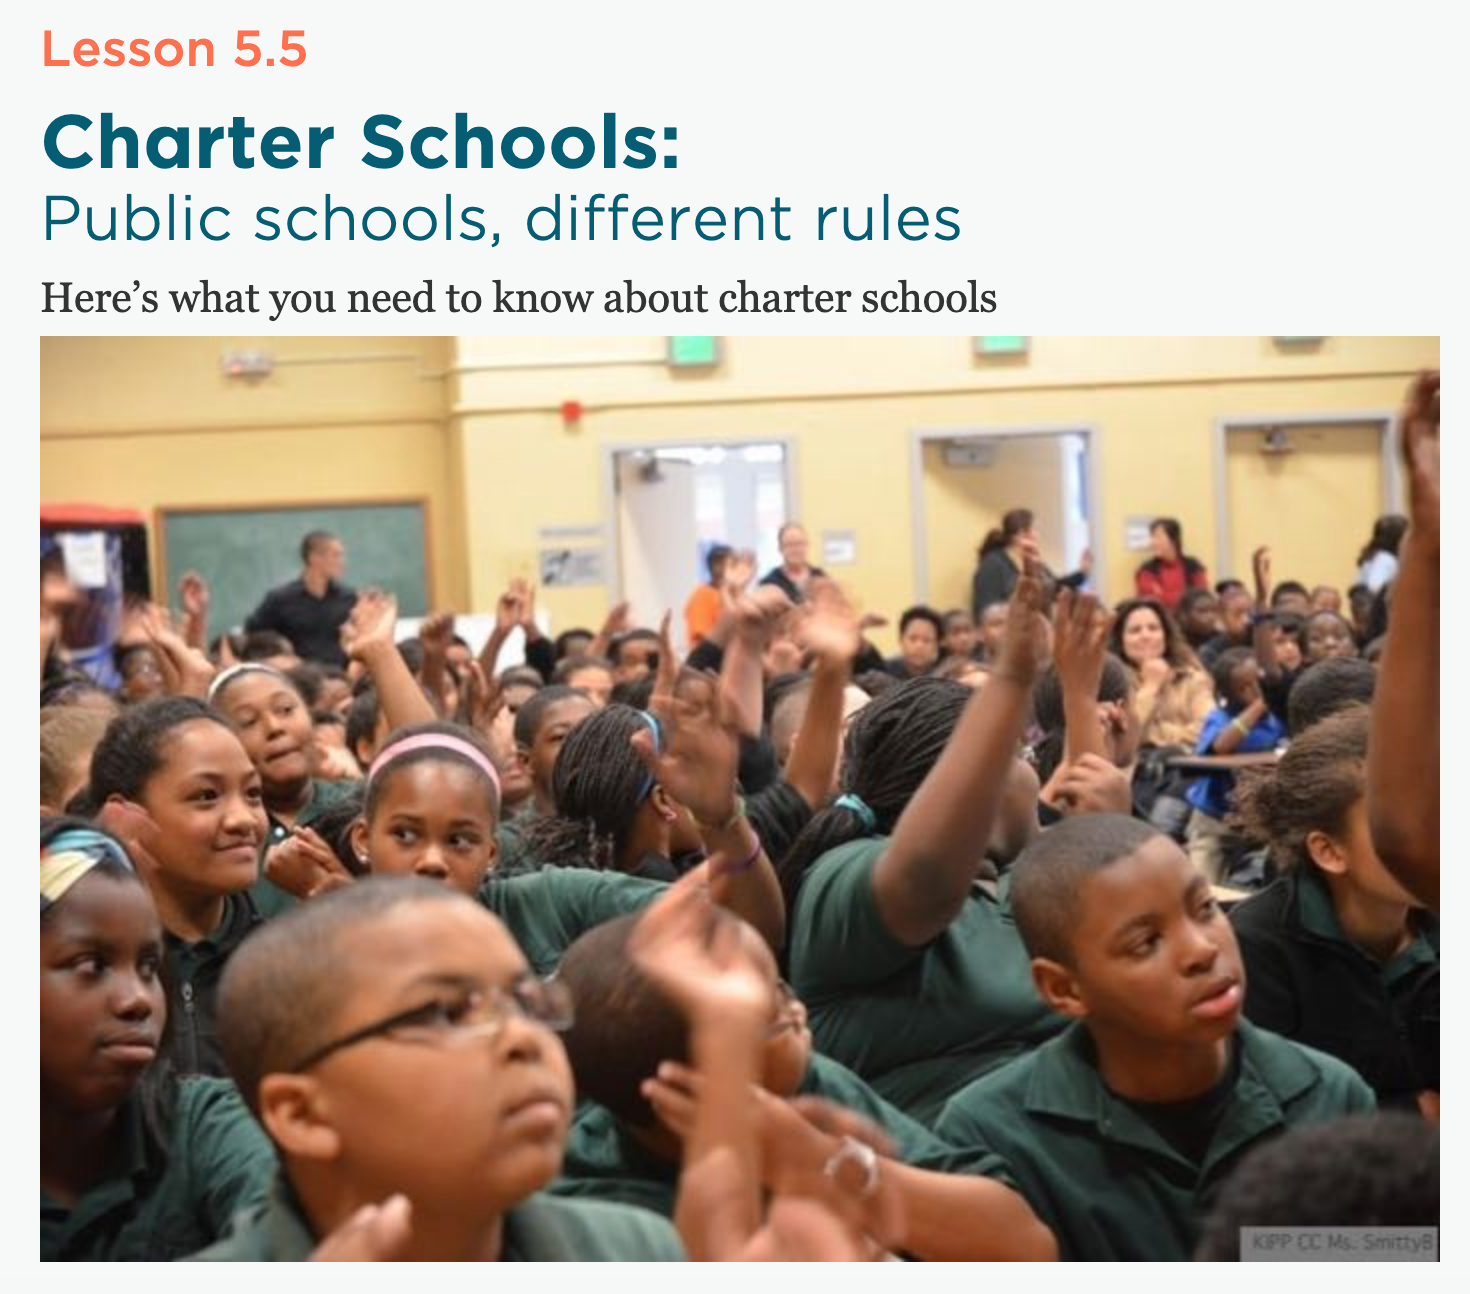 Want to learn more about charter schools? Ed100.org is a great resource.  https://ed100.org/lessons/charterschools